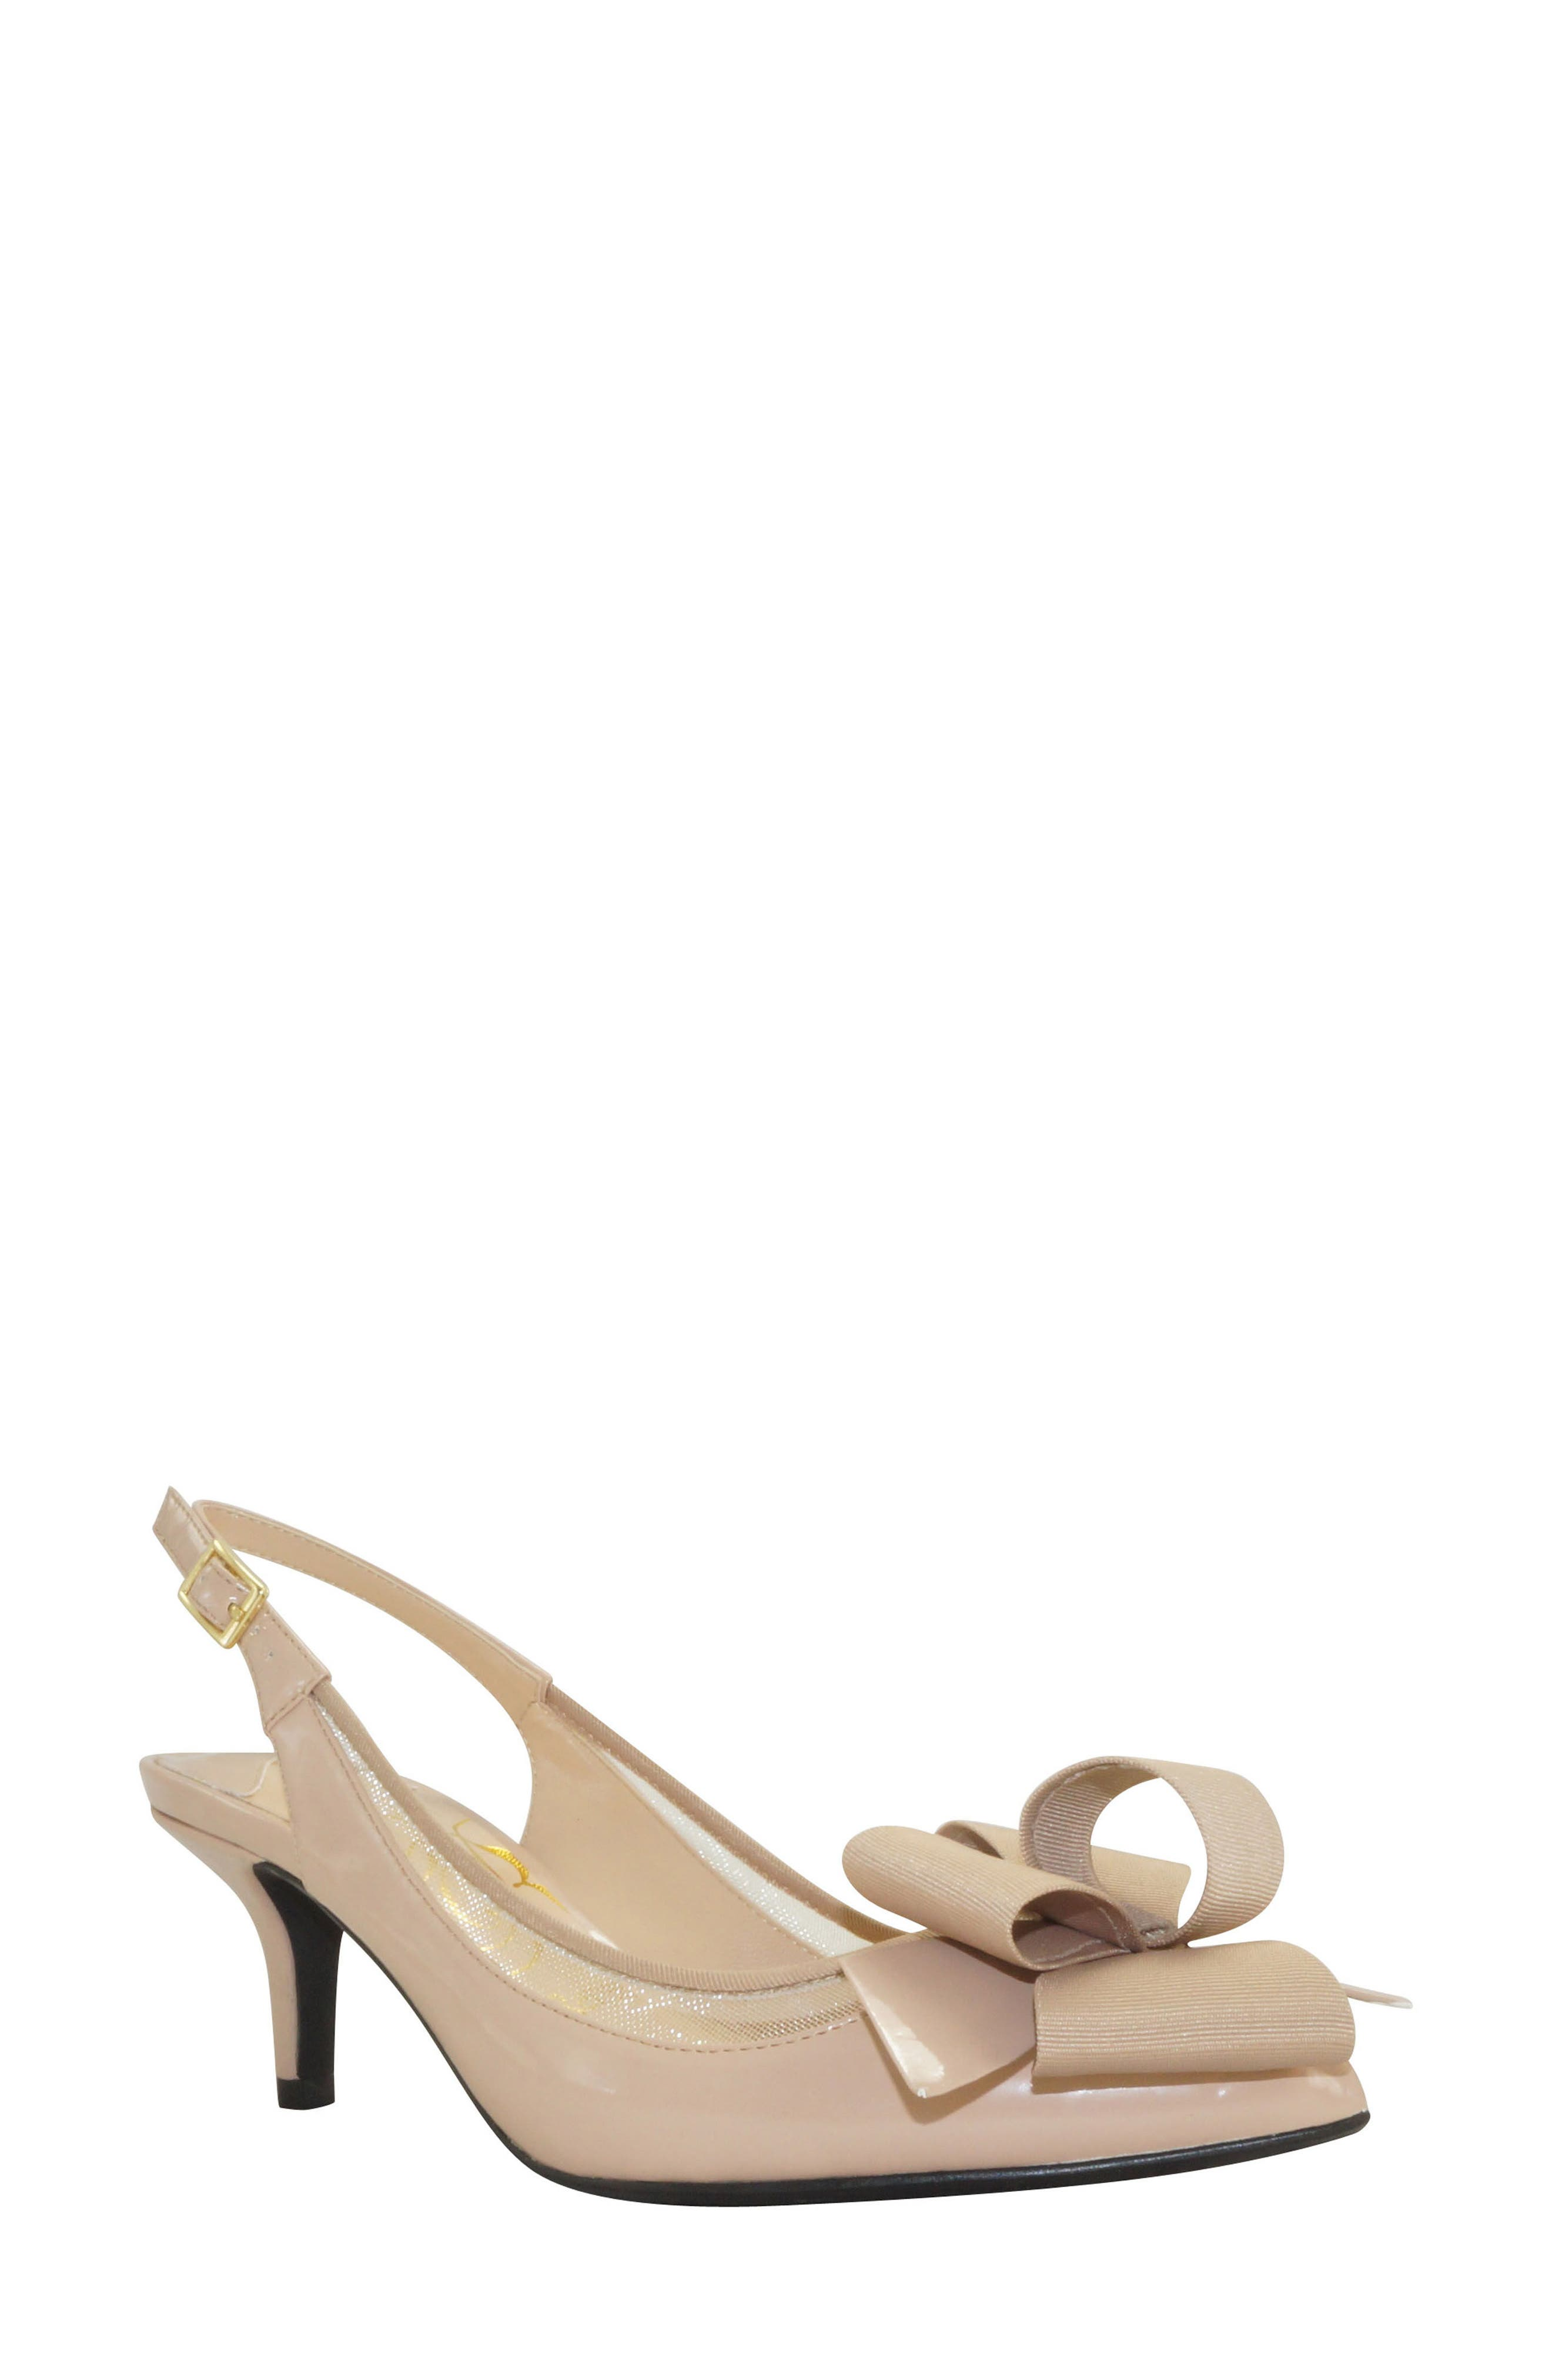 'Garbi' Pointy Toe Bow Pump,                         Main,                         color, 260